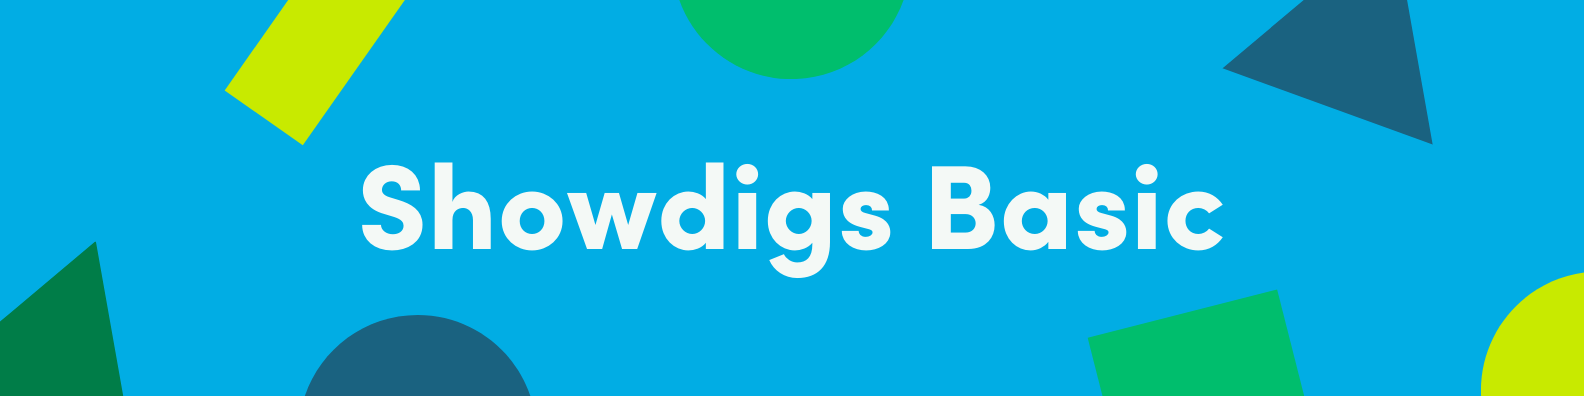 showdigs scheduling on-demand fieldwork software for busy property managers